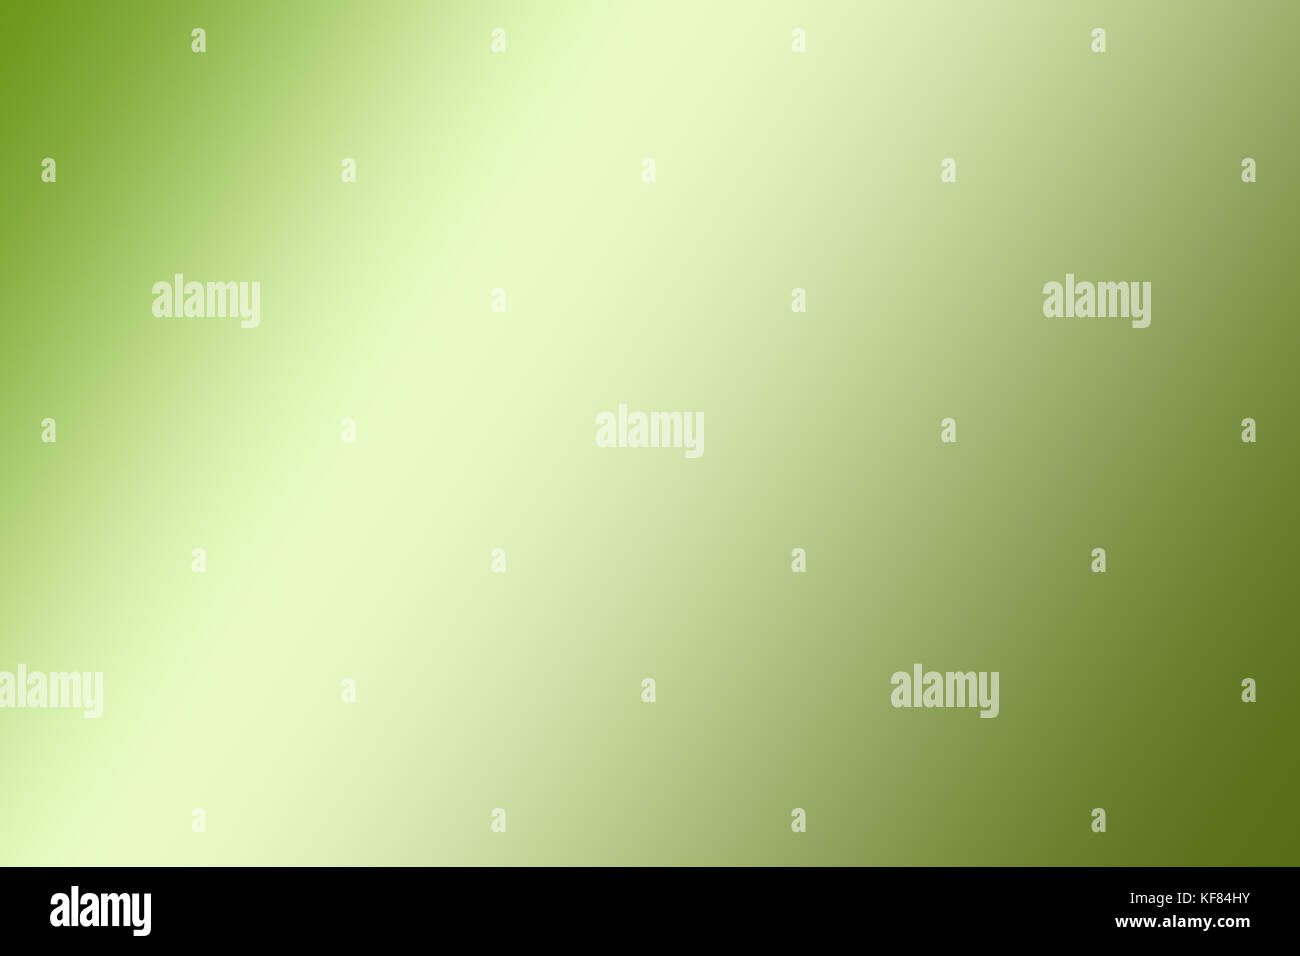 Abstract digital color background - Stock Image